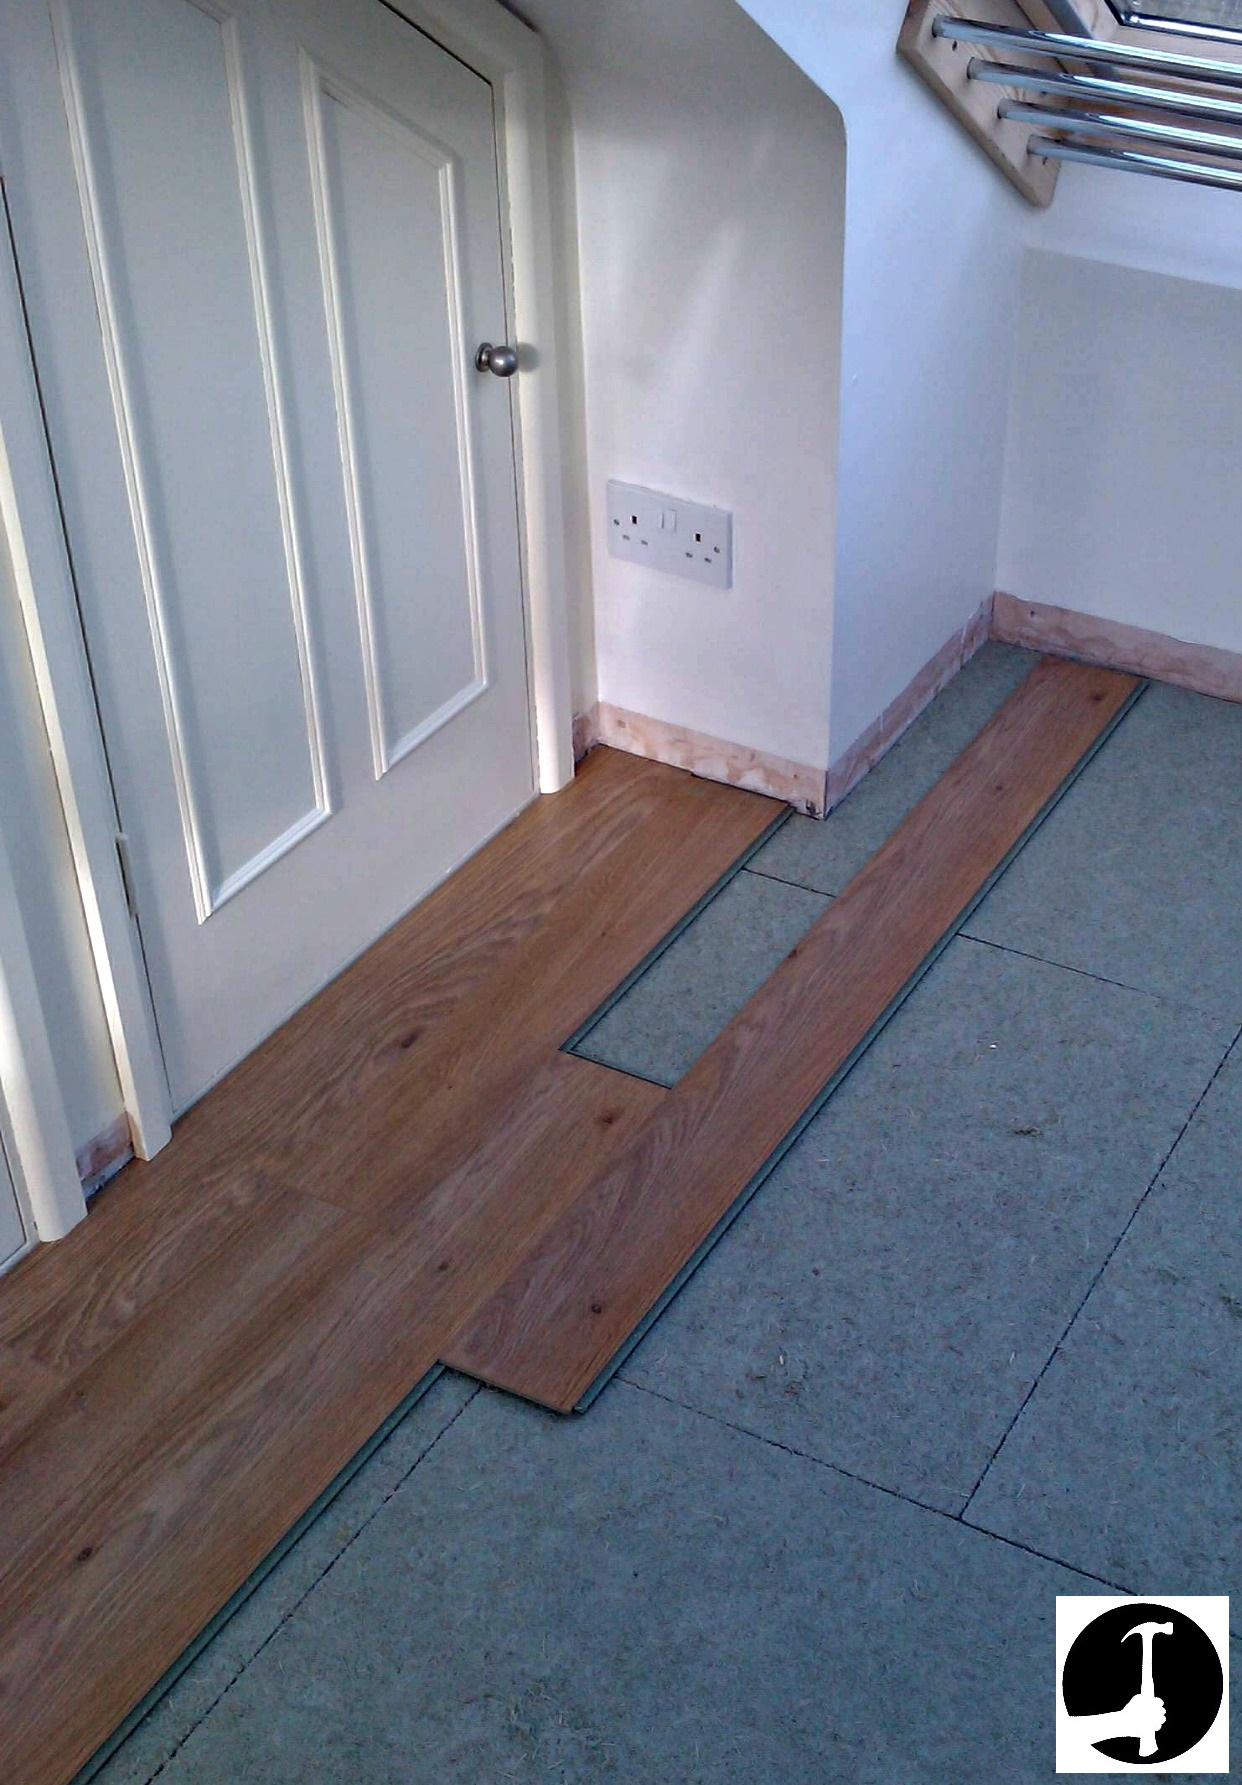 Installation of laminate wood flooring wood floors How to install laminate flooring in a bathroom